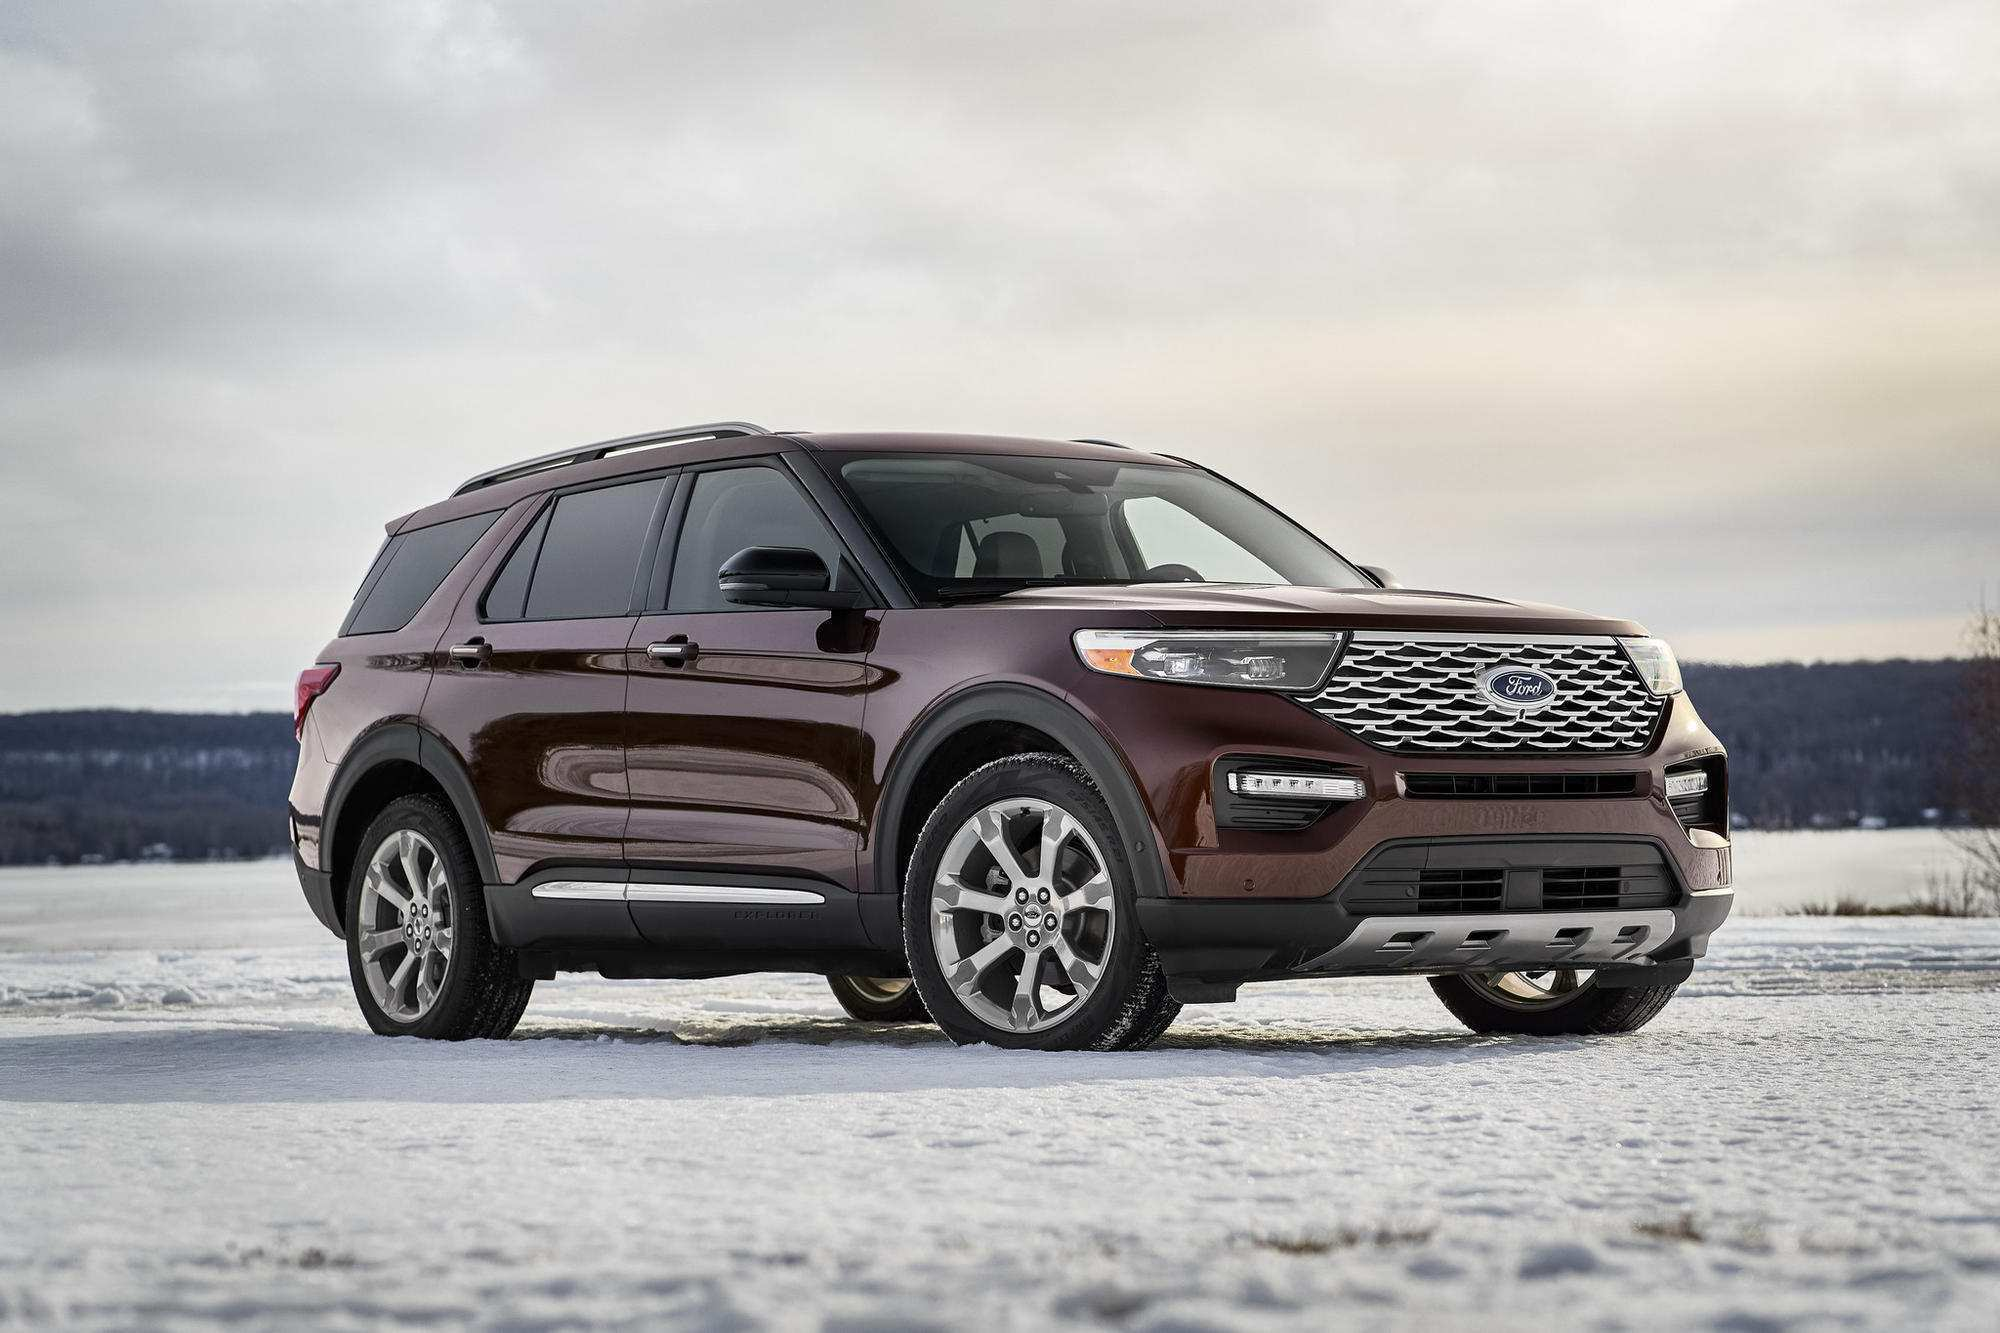 48 Concept of 2020 Ford Explorer Sports Photos with 2020 Ford Explorer Sports